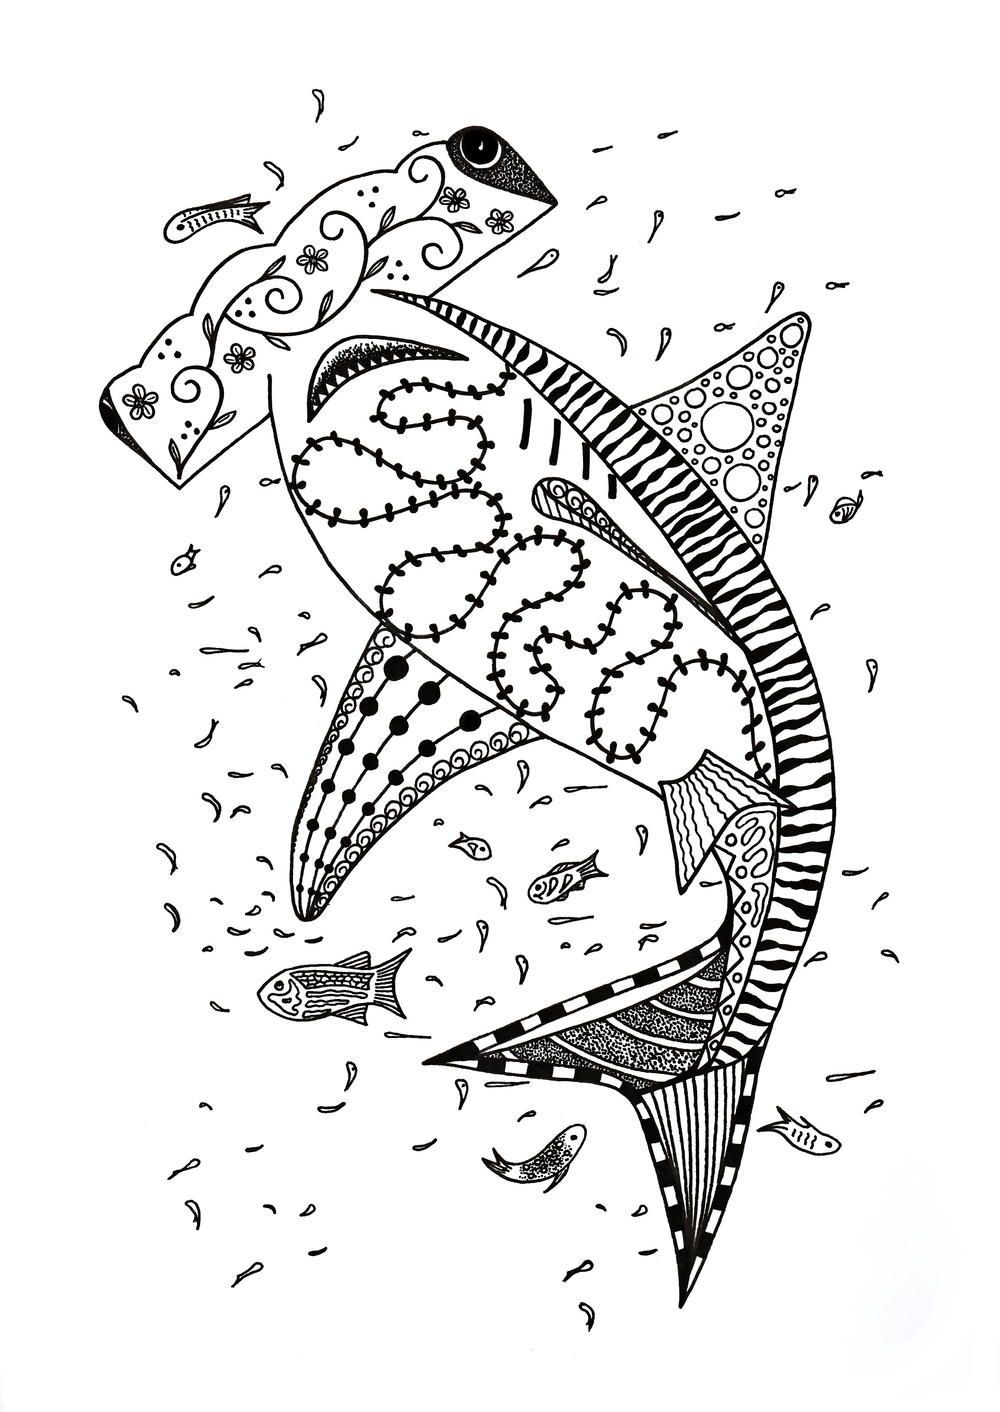 Hammerhead Shark Coloring Page Shark coloring pages